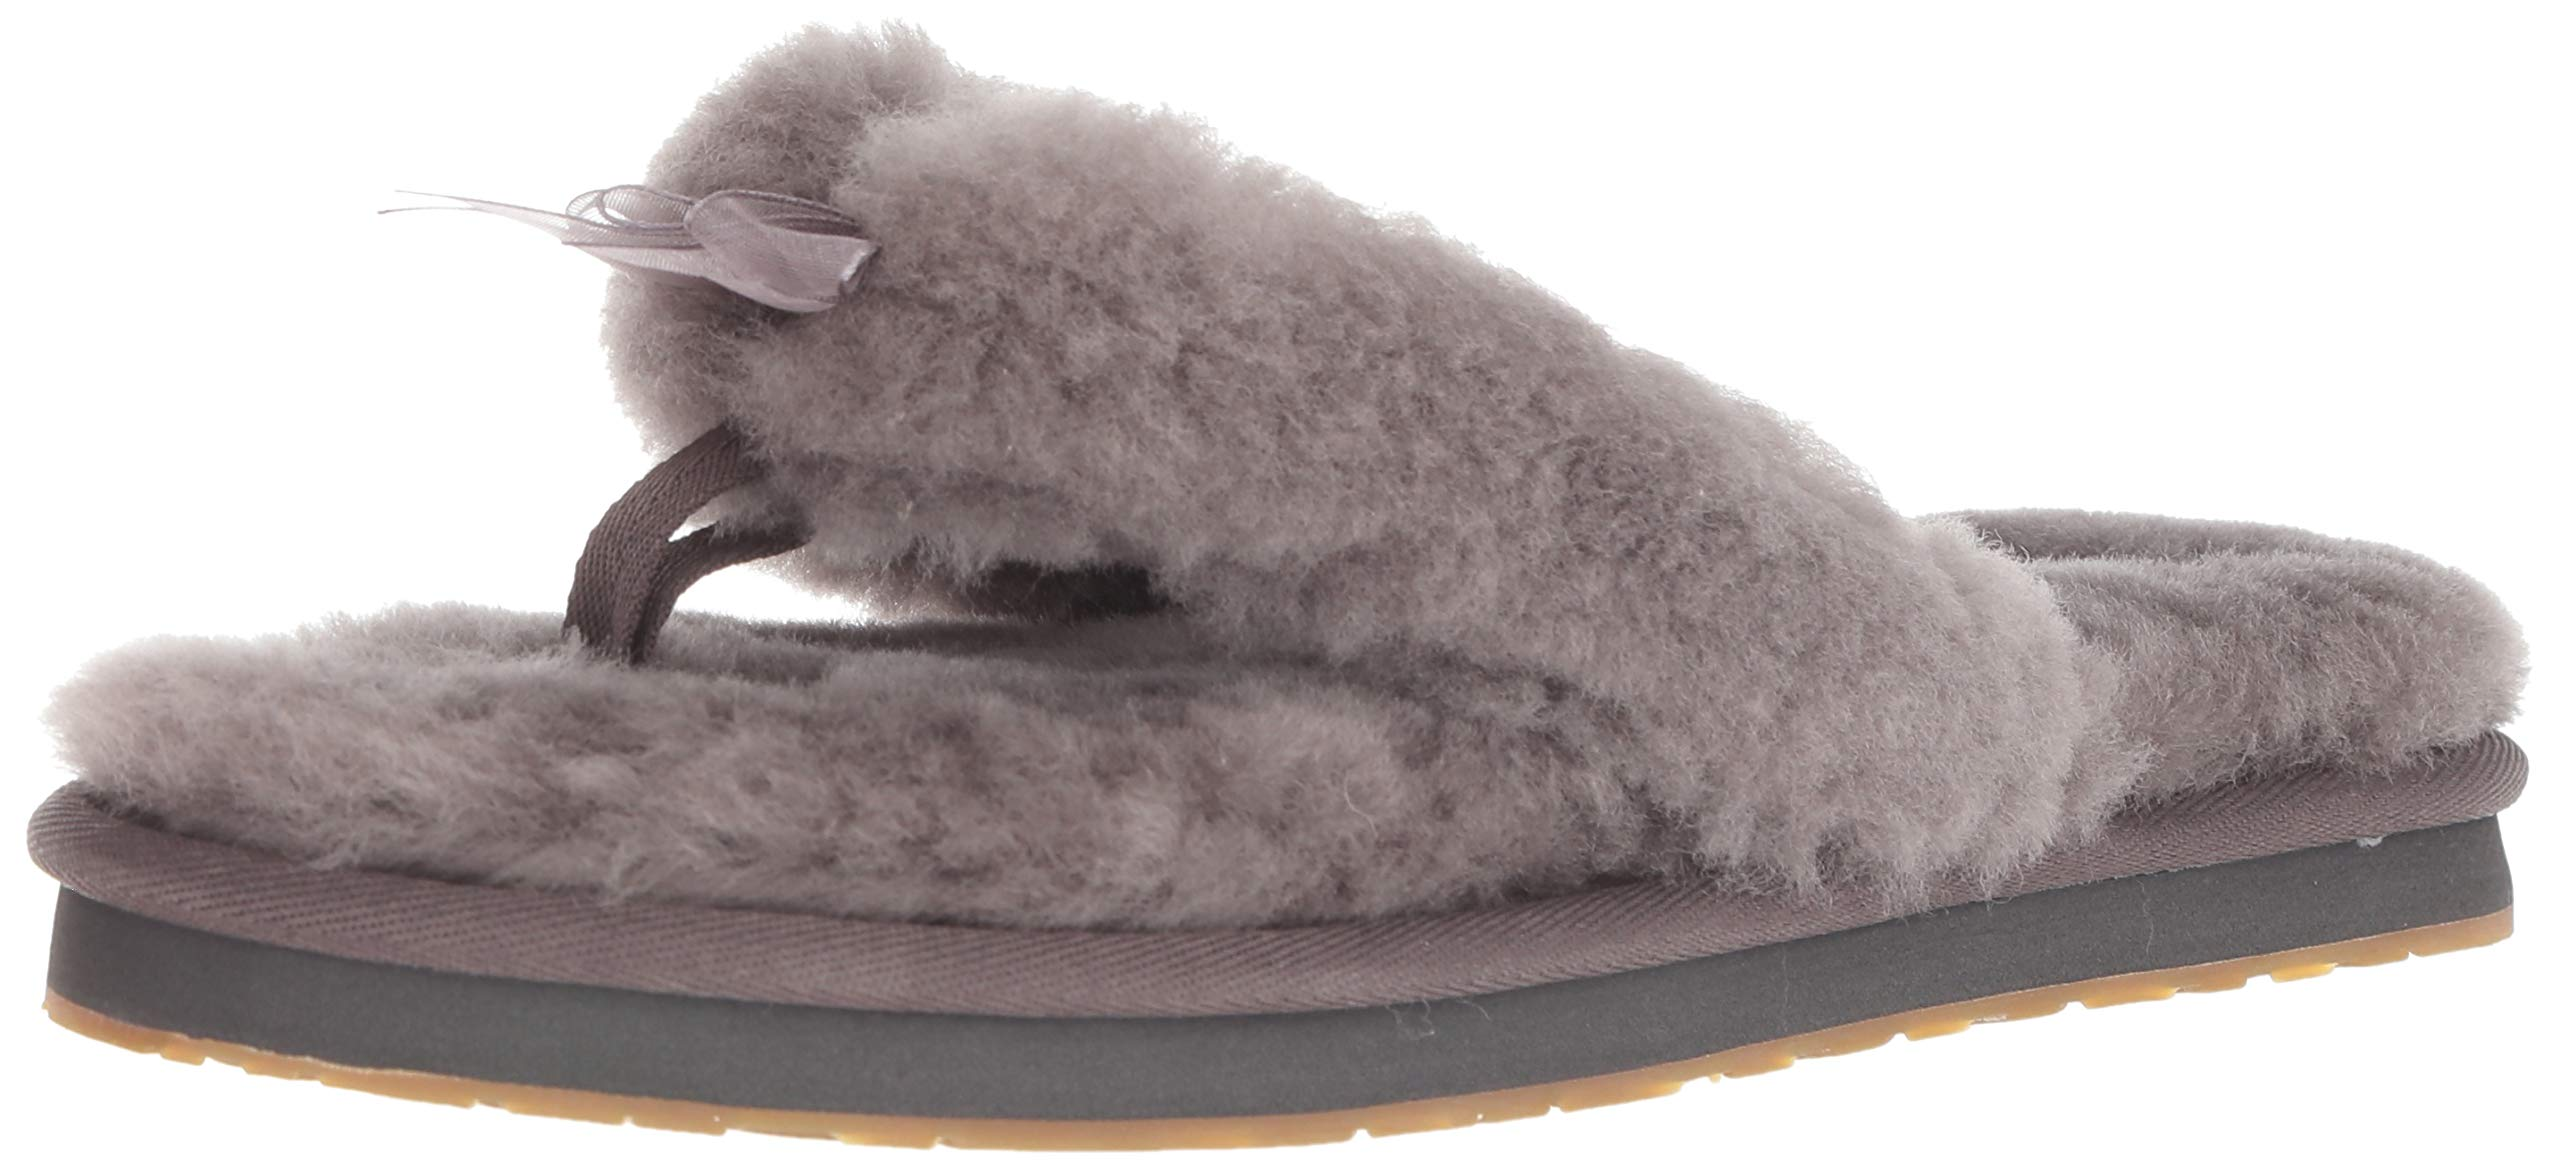 UGG Women's W Fluff FLIP Flop III Slipper, Grey, 8 M US by UGG